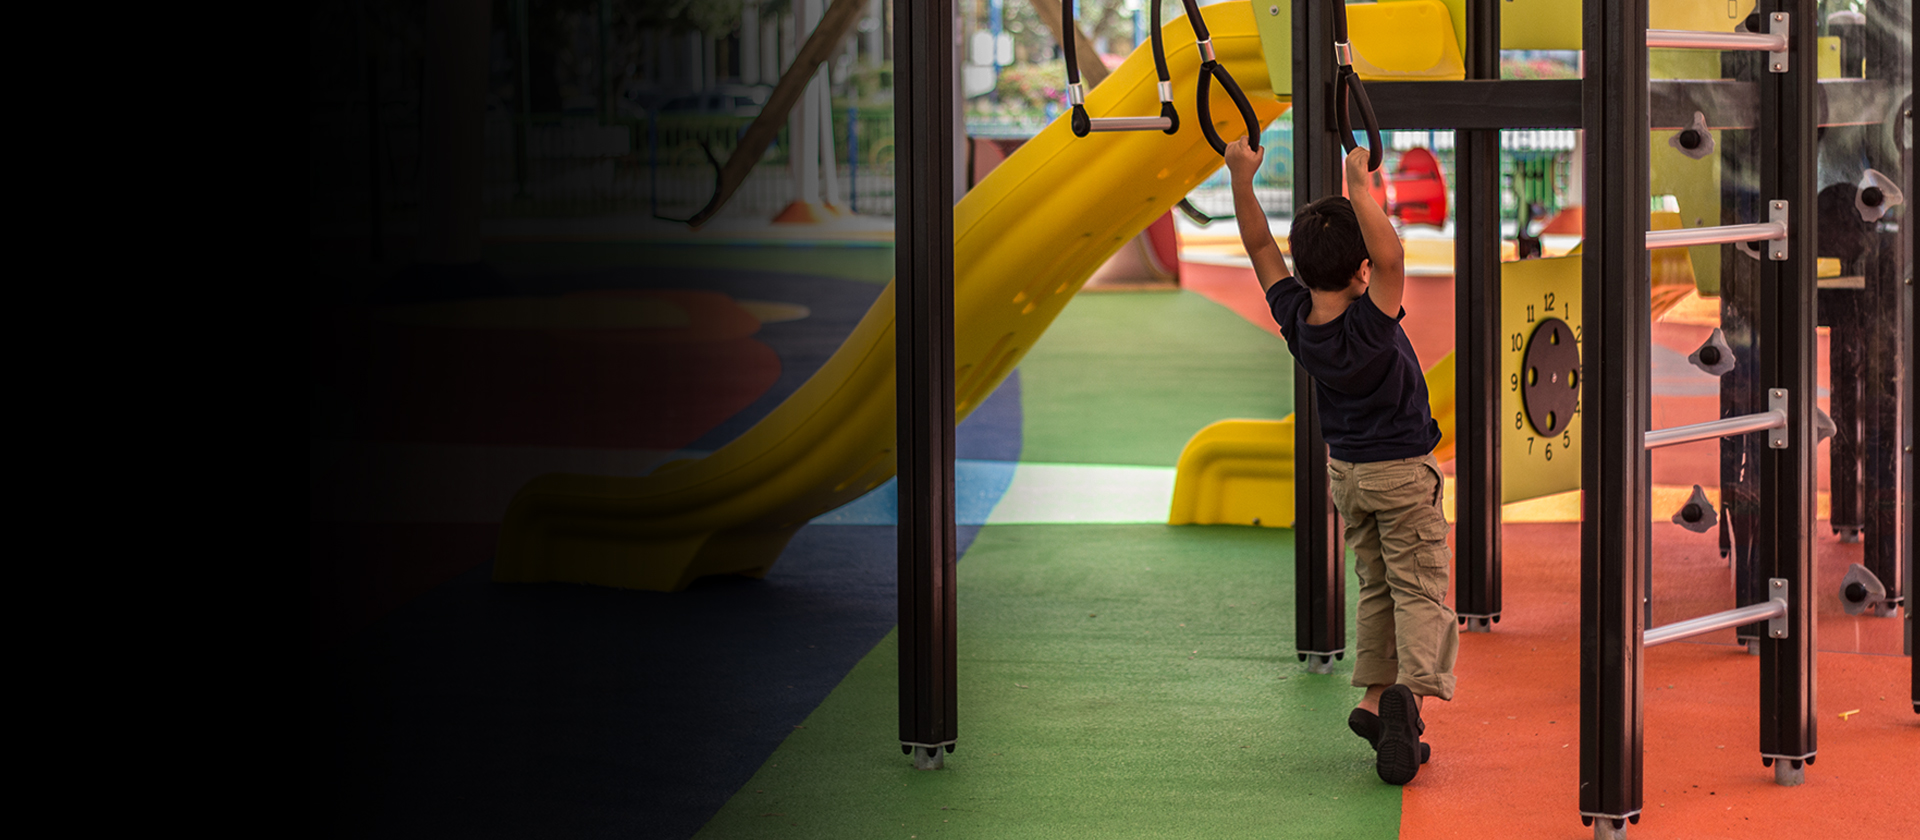 Chlorinated paraffins are found in elevated levels (µg/g range) in playground tiles